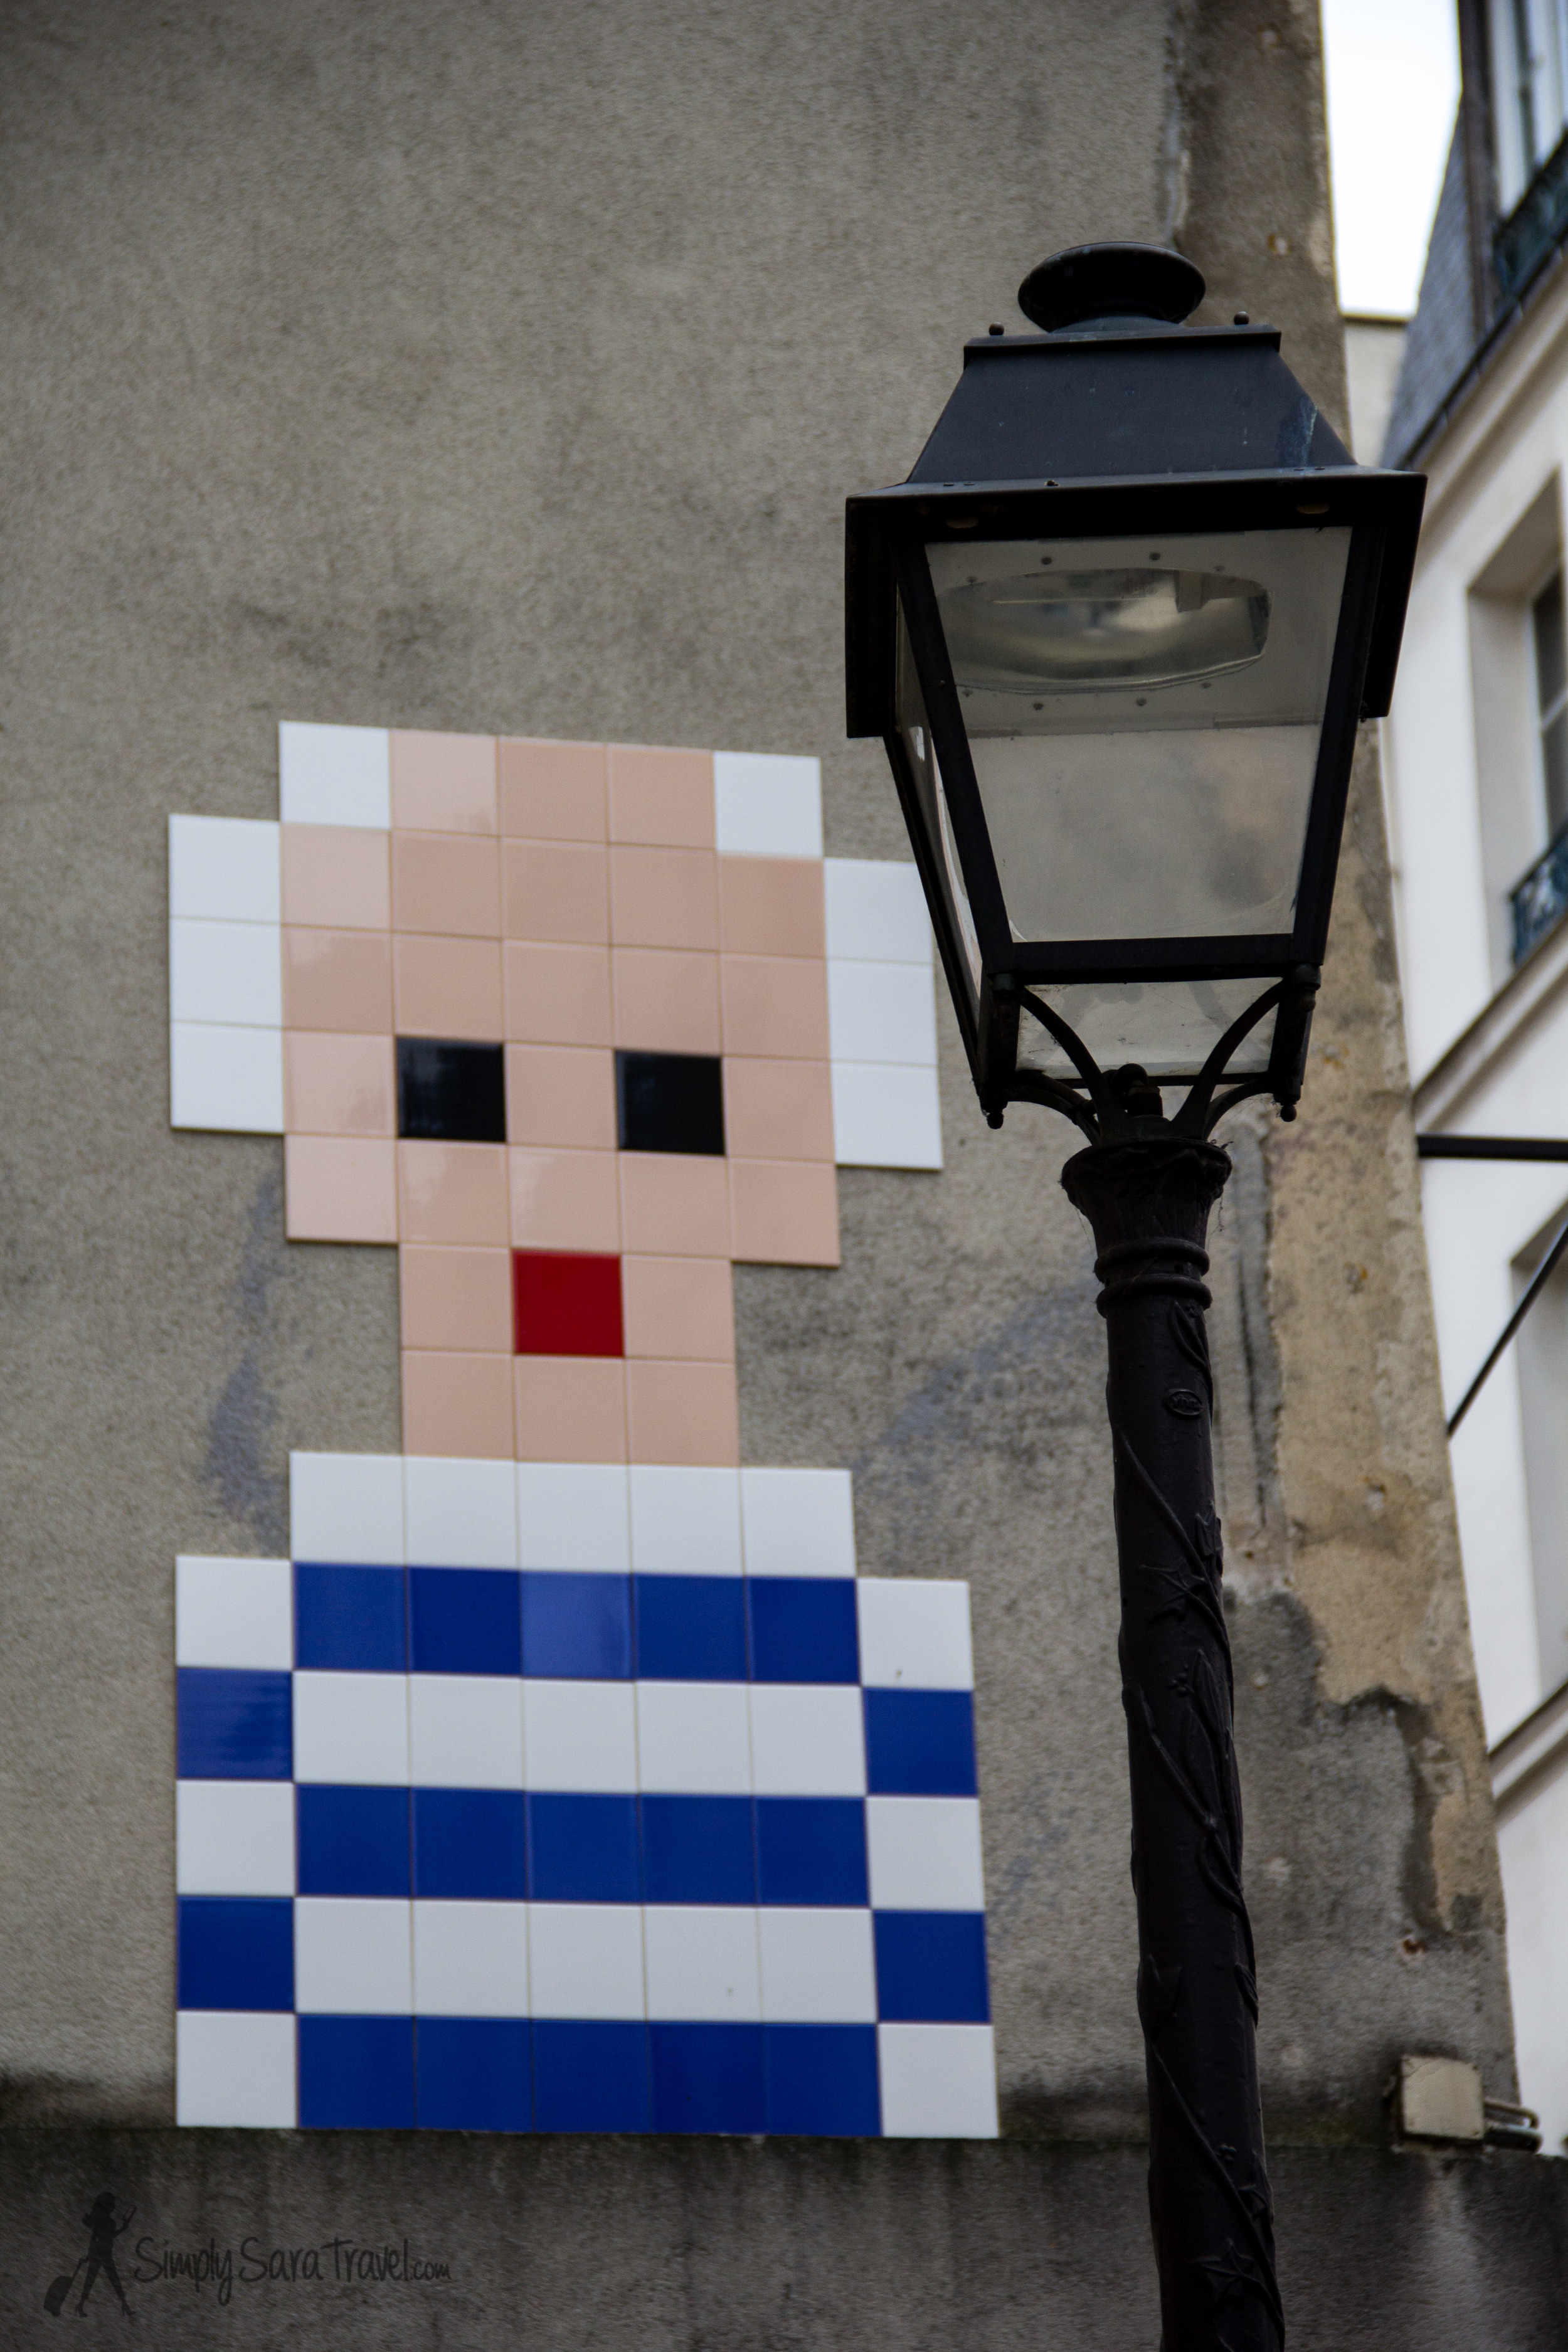 When you see the Picasso street art, then you know you are close to the museum that houses his work in Paris...